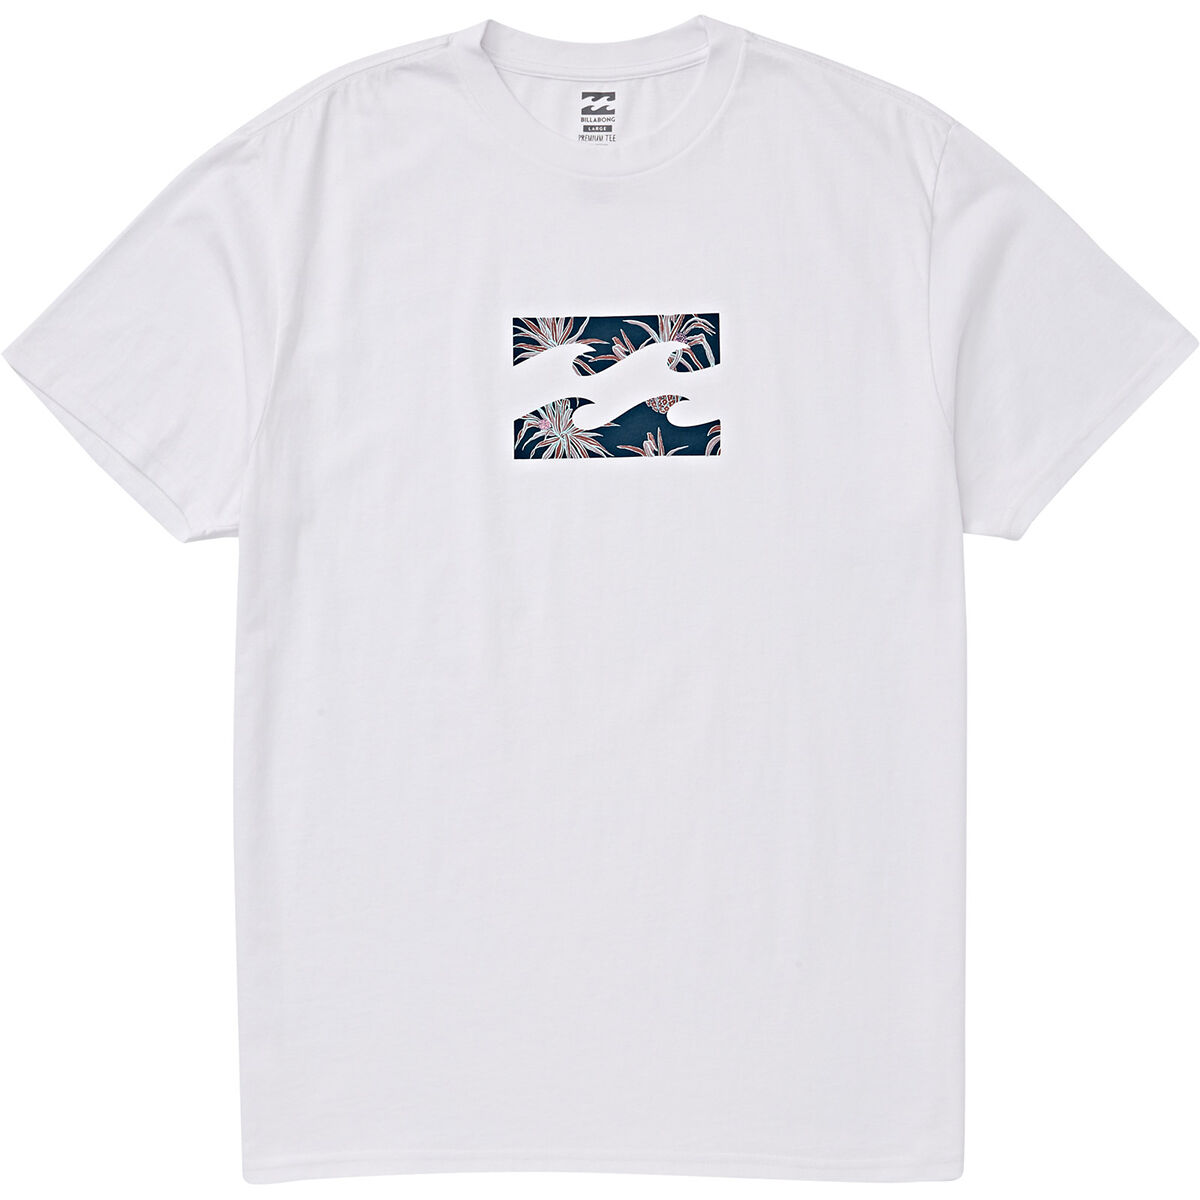 Billabong Men's Teamwave Short-Sleeve Graphic Tee - White, XL